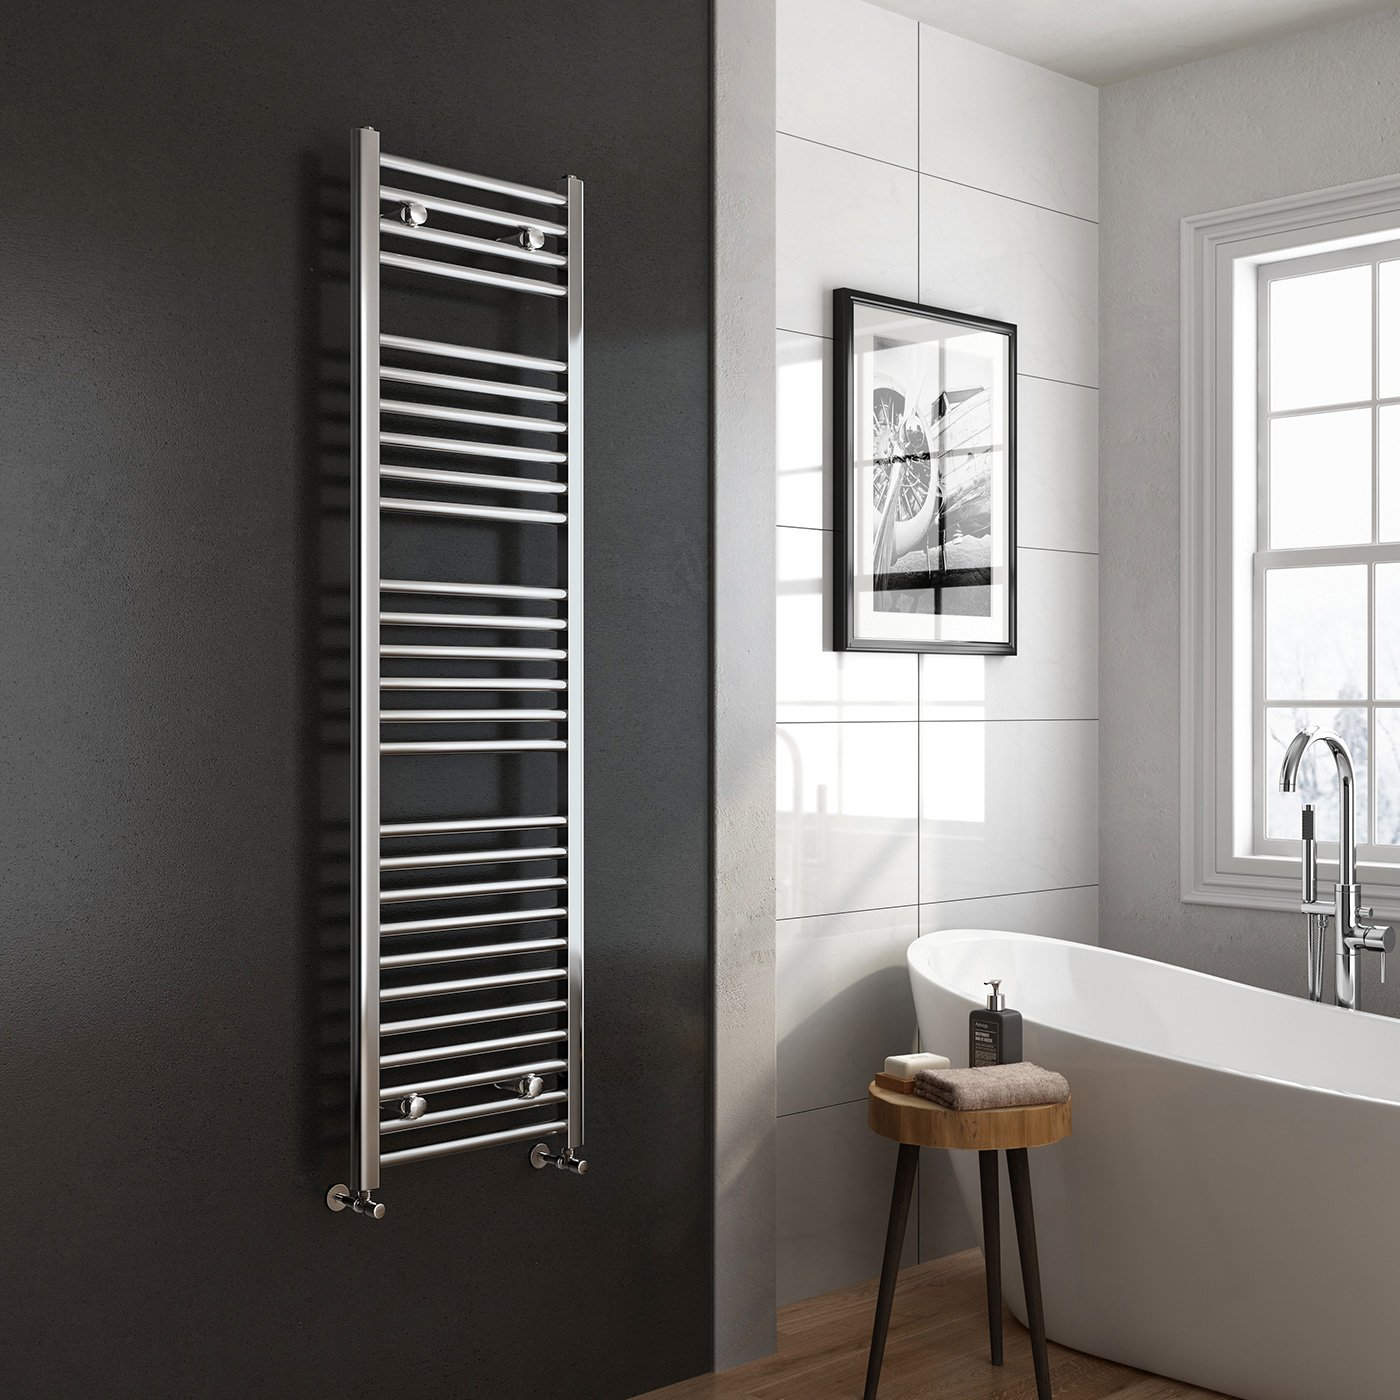 Natasha ladder rail straight modern electric towel radiator in chrome - Ibathuk 1600 X 450 Premium Straight Heated Towel Rail Chrome Bathroom Radiator All Sizes Ibathuk Amazon Co Uk Diy Tools